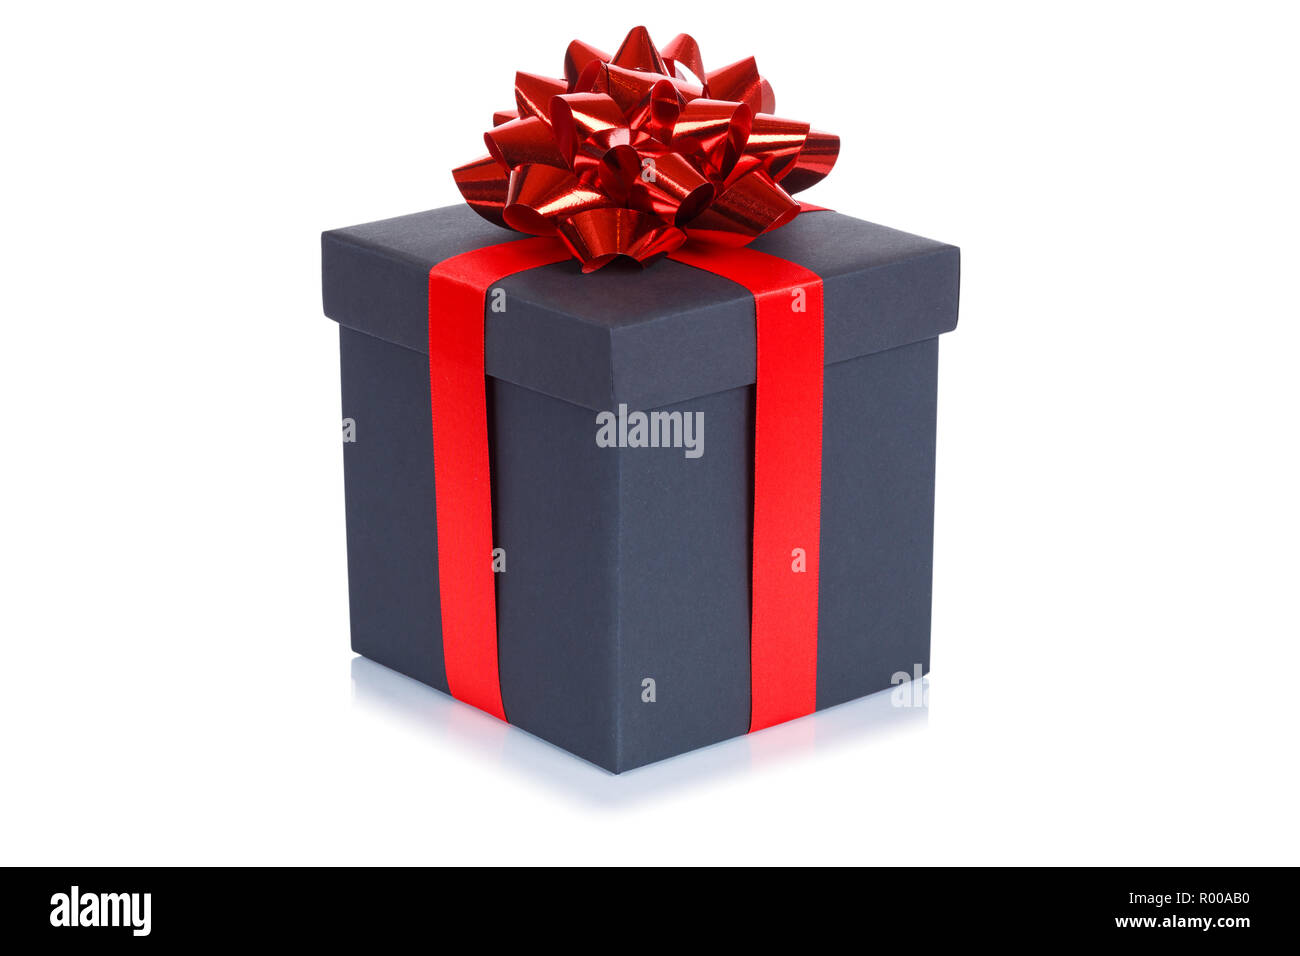 Birthday gift christmas present black box isolated on a white background - Stock Image